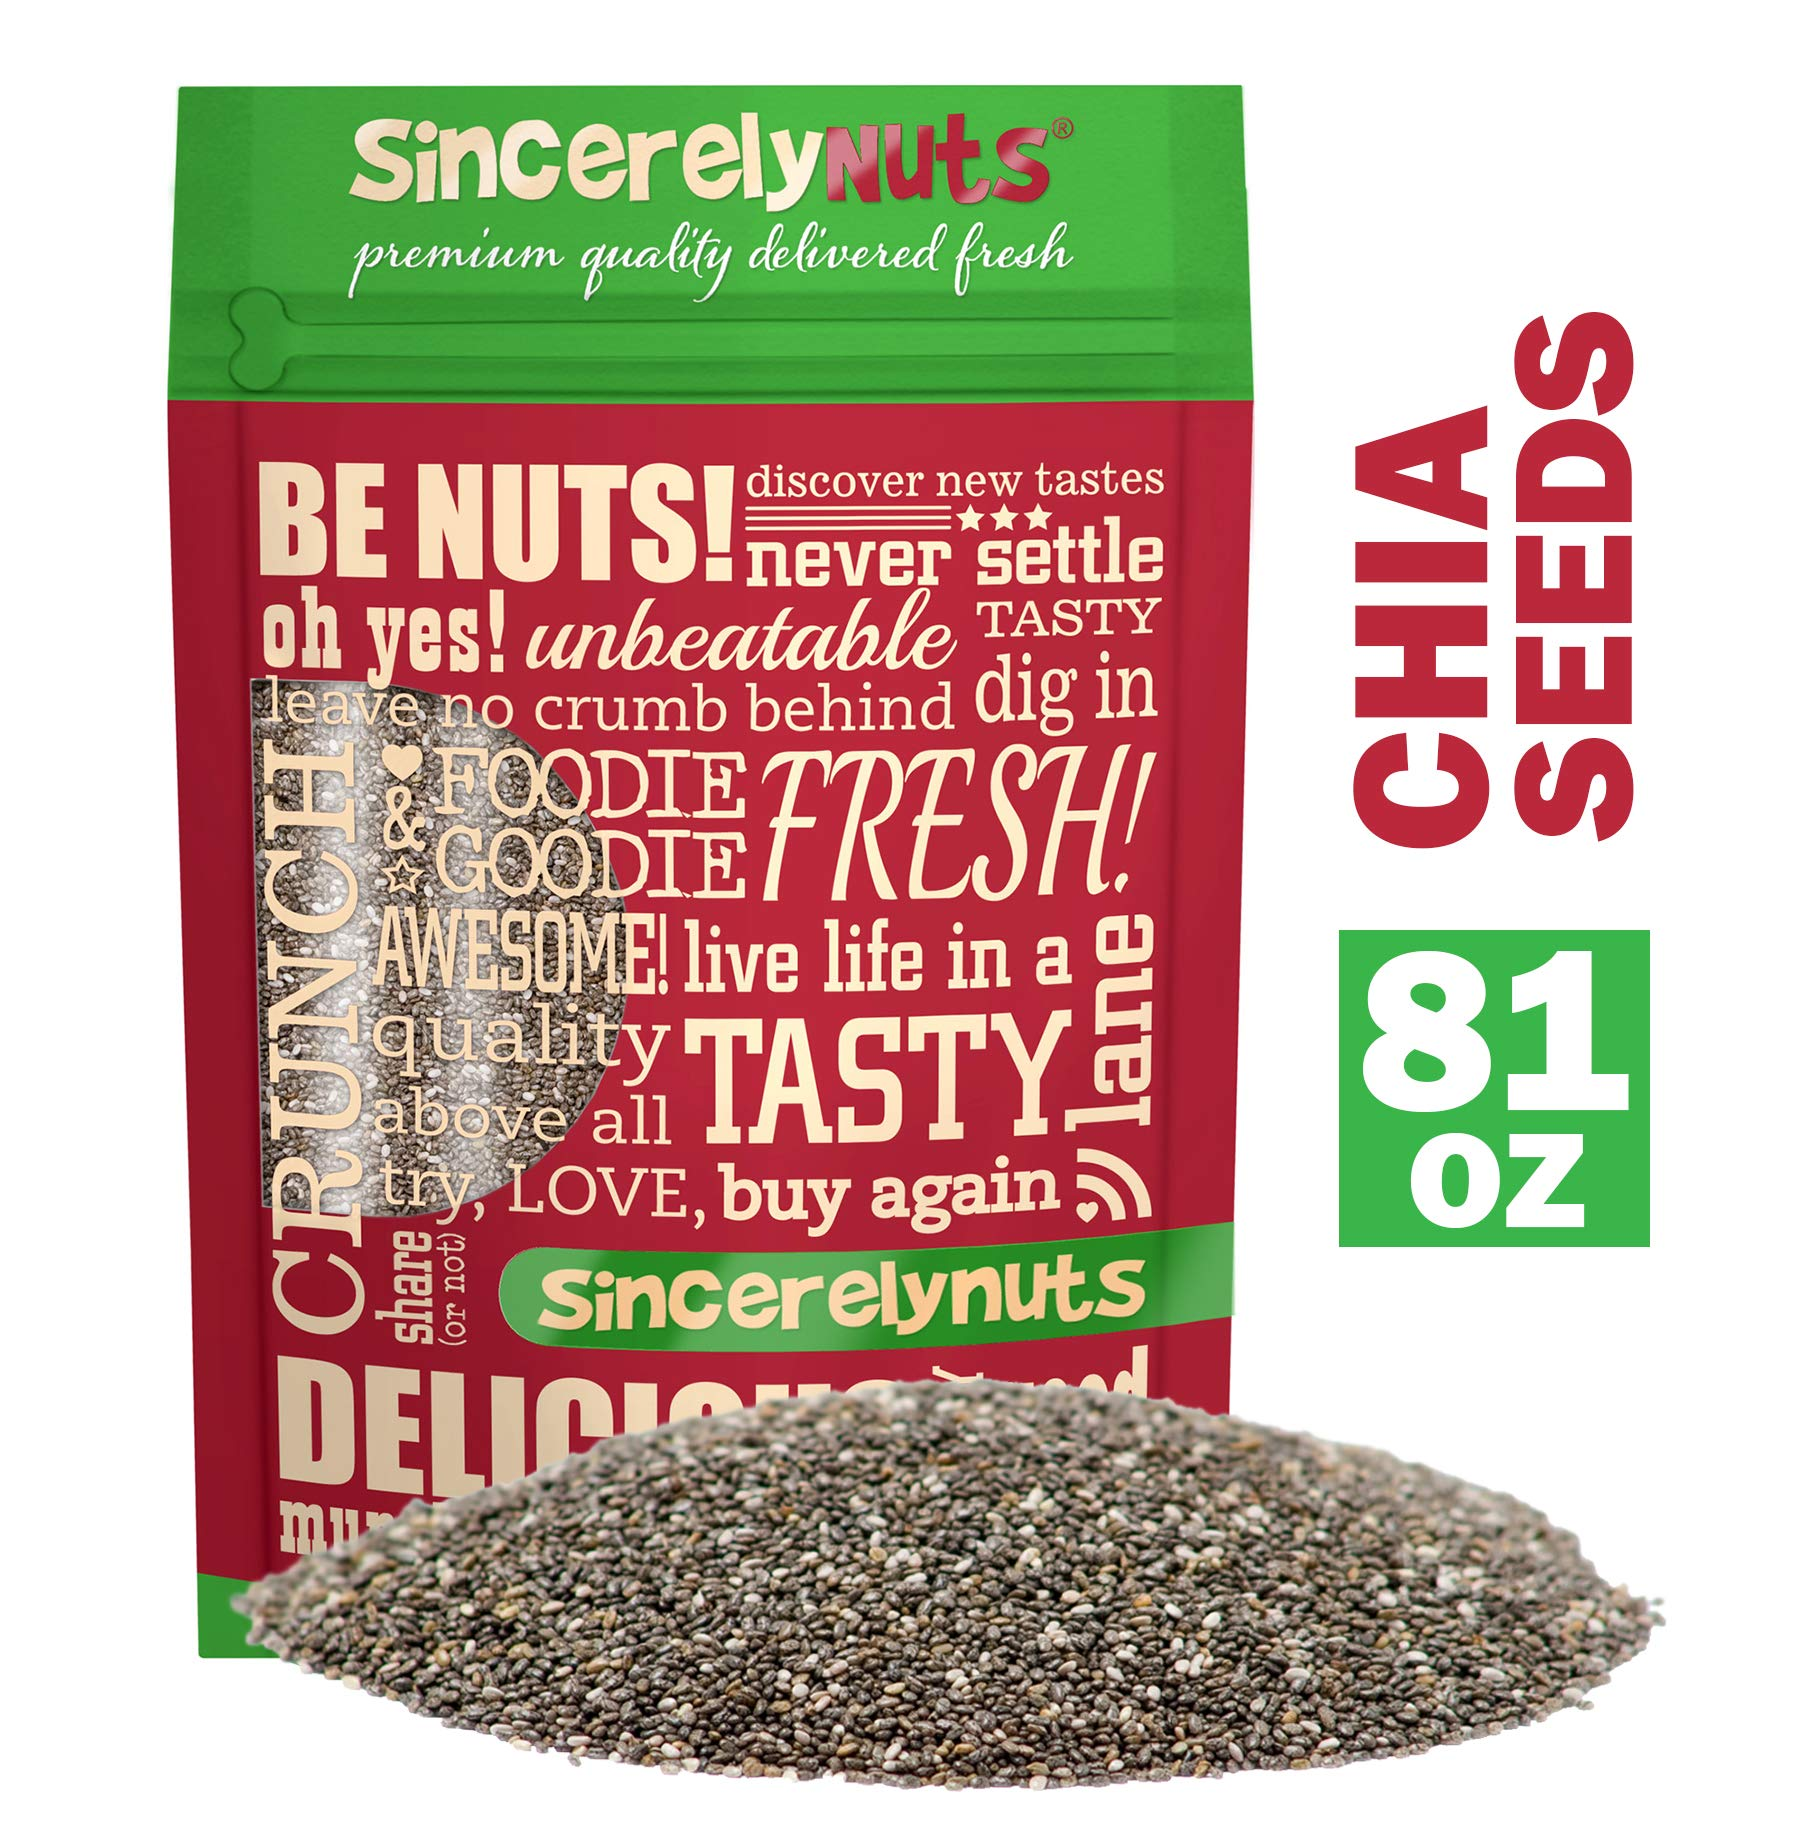 Sincerely Nuts Black Chia Seeds (5lb bag) - Natural Superfood   Raw, Gluten Free, Vegan & Kosher   Healthy Snack Food & Smoothie Thickener   Amazing Source of Protein, Omega 3, Fiber, Vitamins by Sincerely Nuts